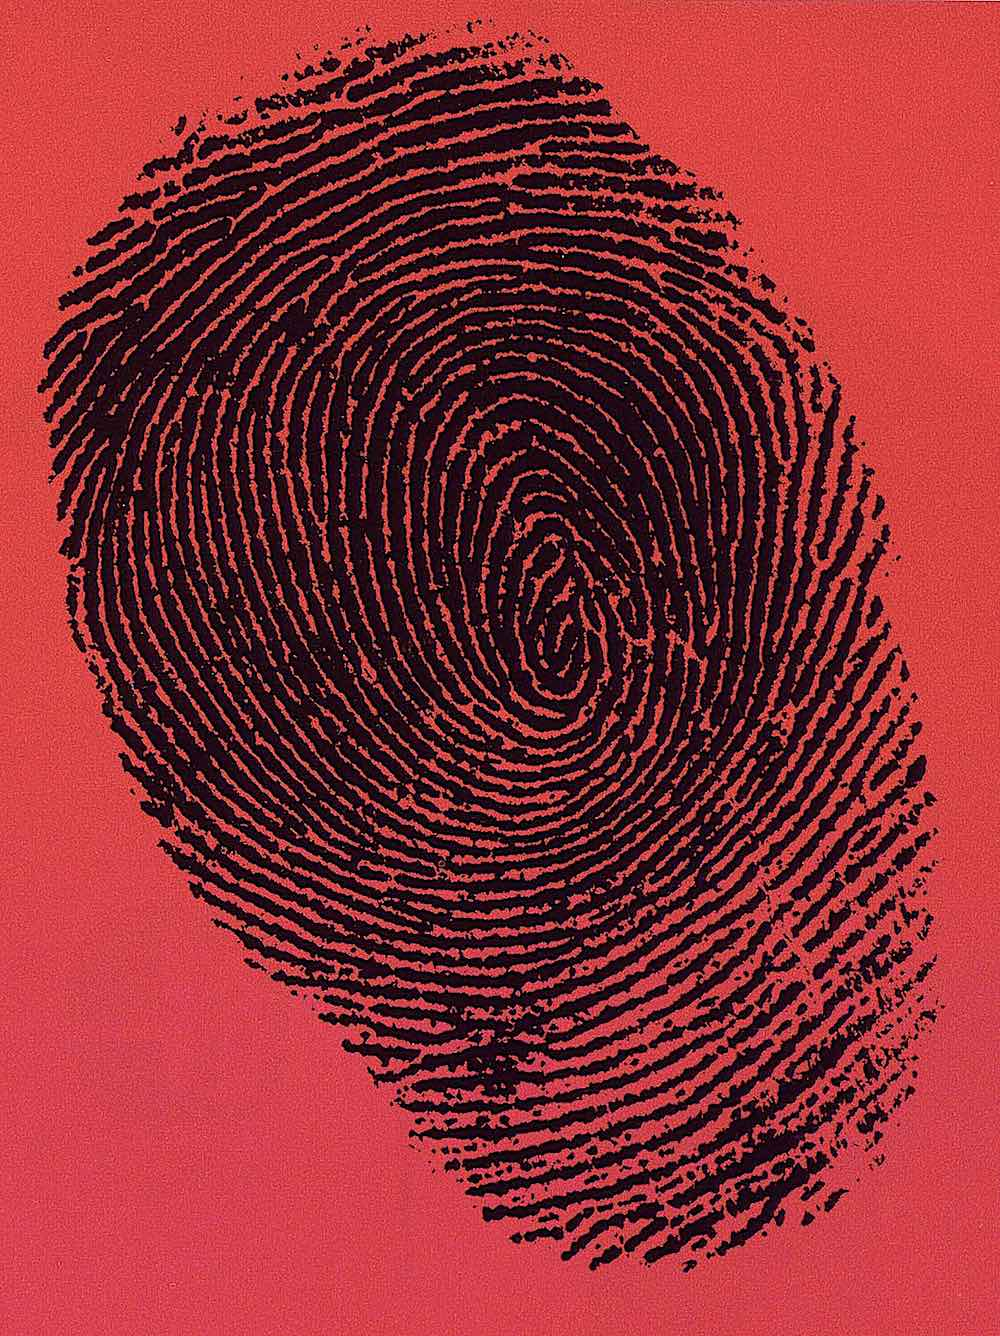 a 1960 fingerprint graphic on red